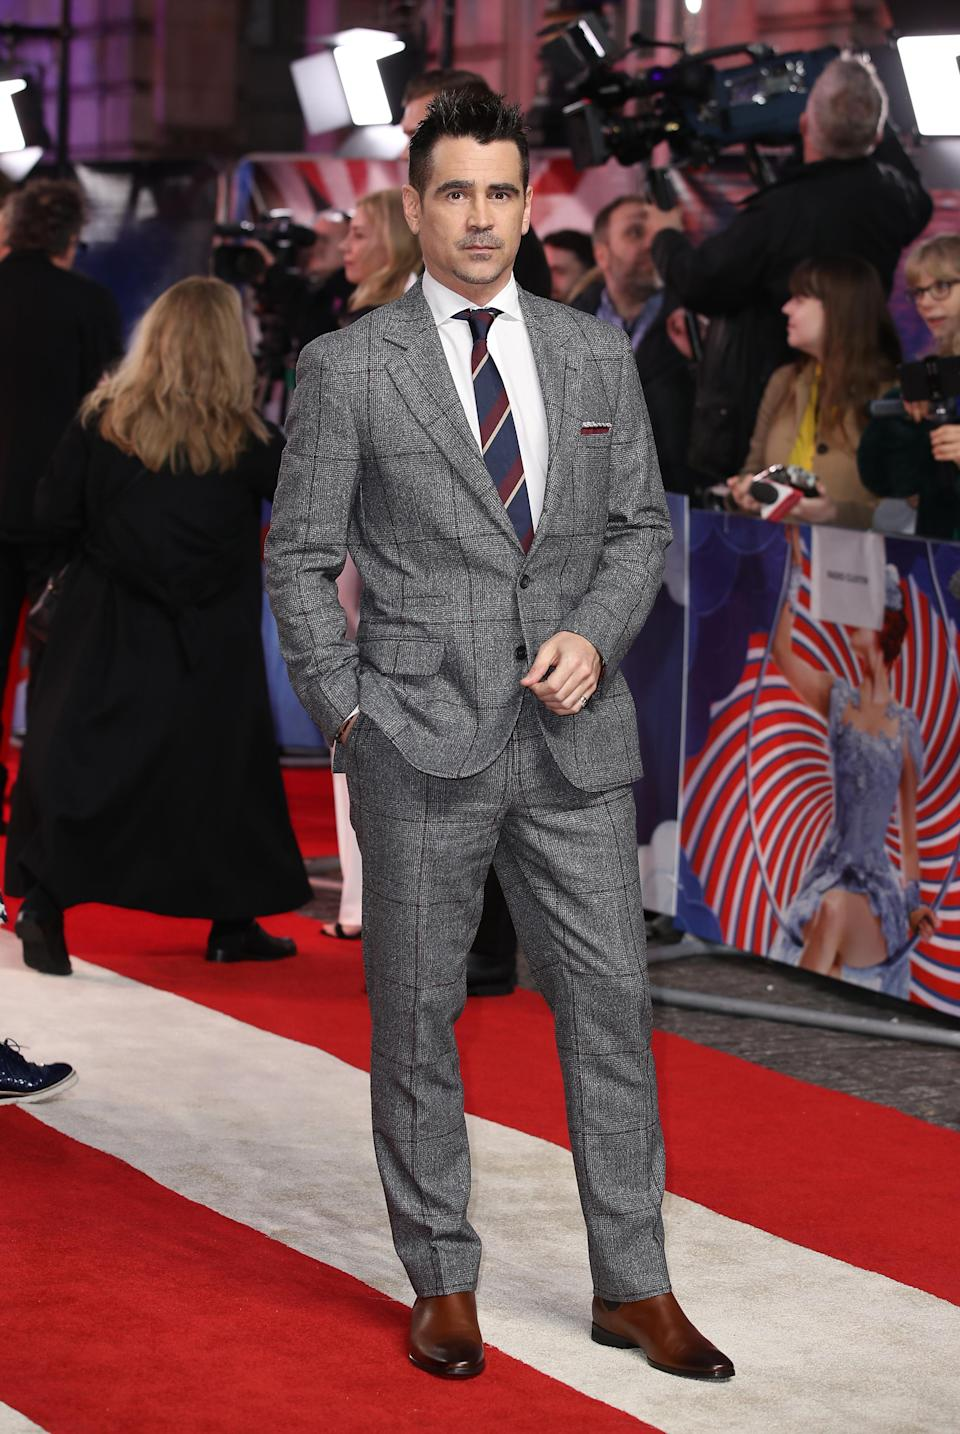 <p>On March 21, the actor wore a Brunello Cucinelli suit to attend the 'Dumbo' premiere in London. <em>[Photo: Getty]</em> </p>